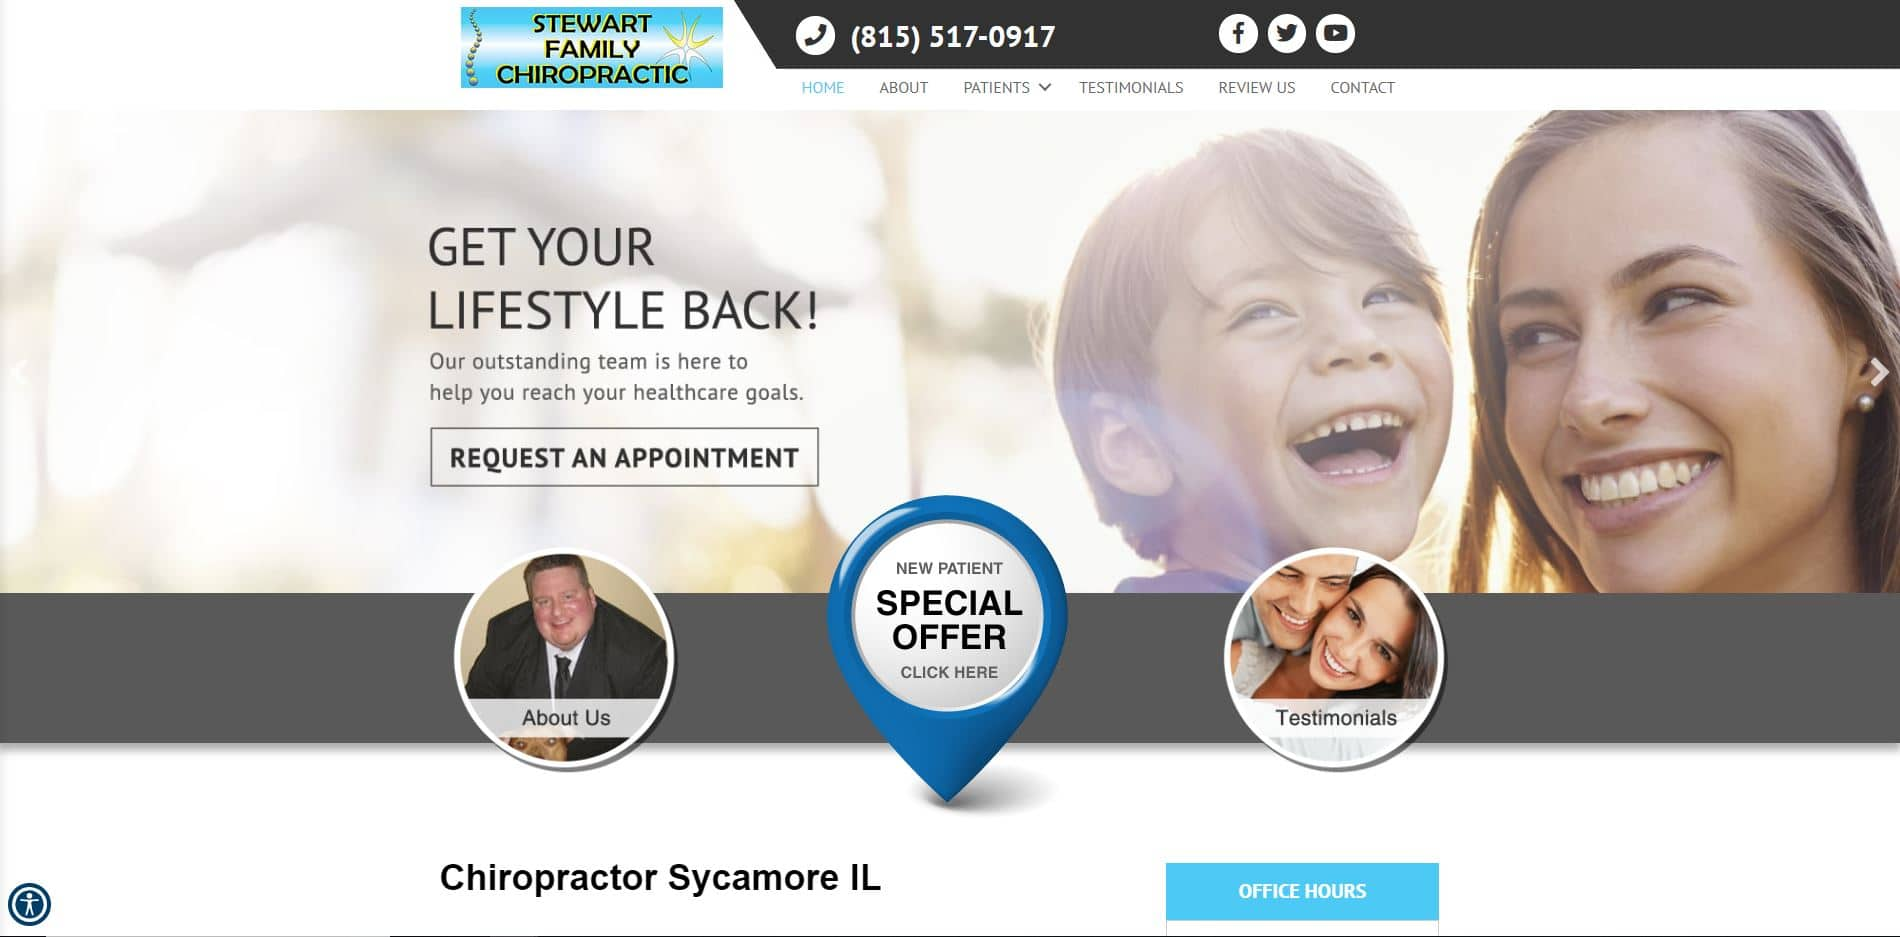 Chiropractor in Sycamore